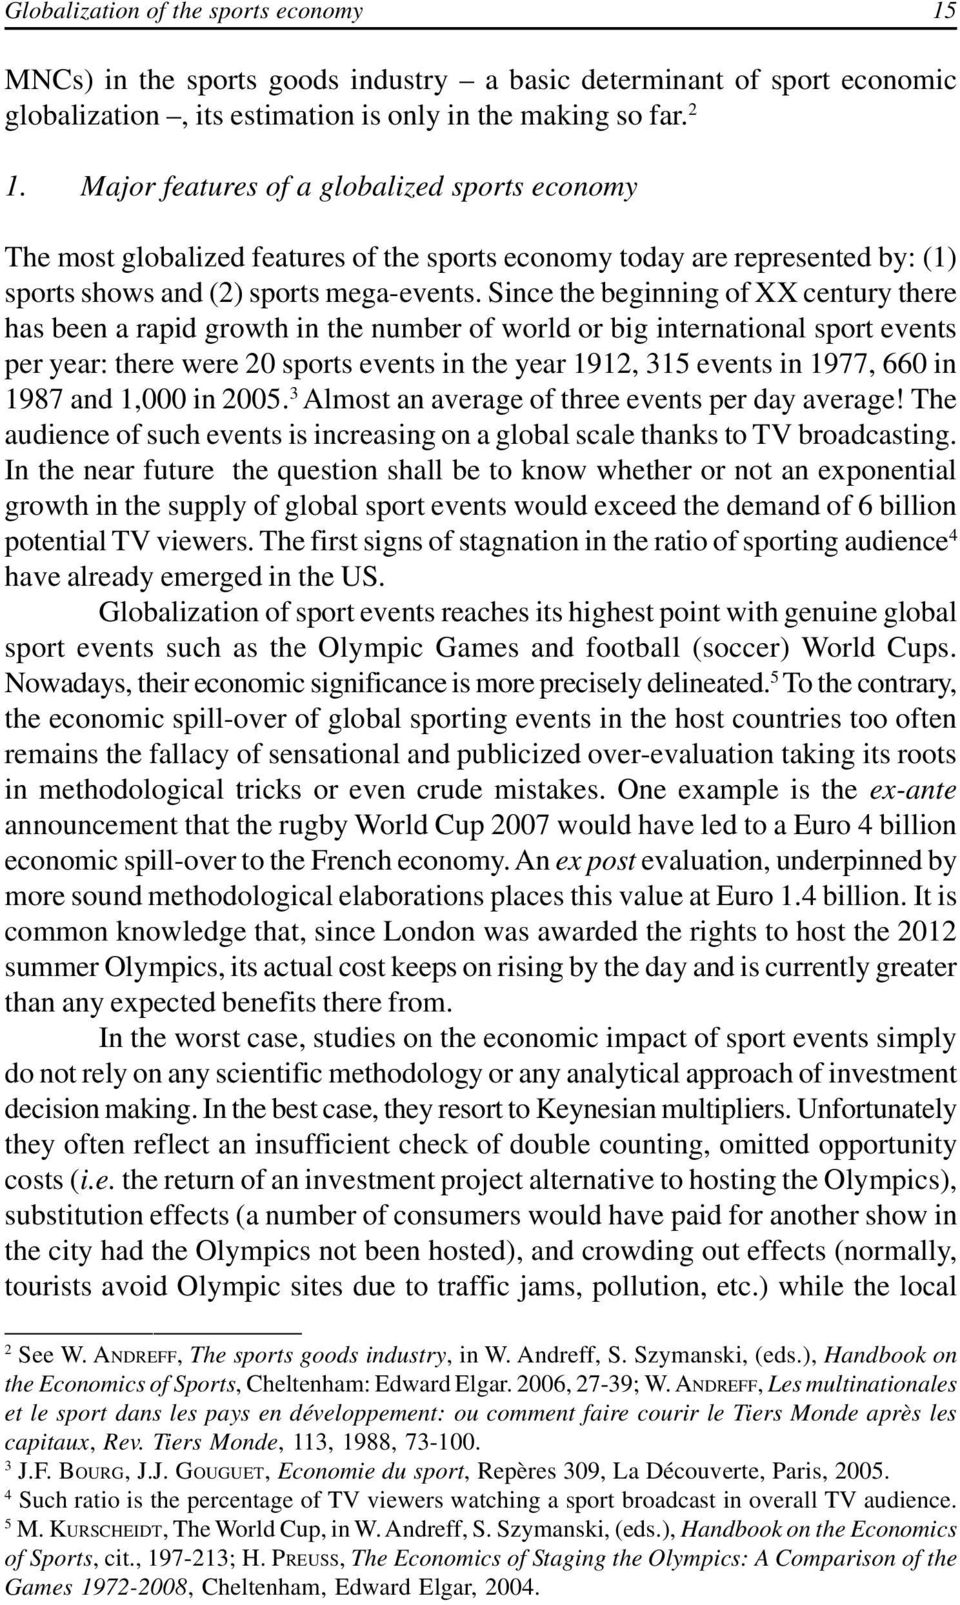 Since the beginning of XX century there has been a rapid growth in the number of world or big international sport events per year: there were 20 sports events in the year 1912, 315 events in 1977,